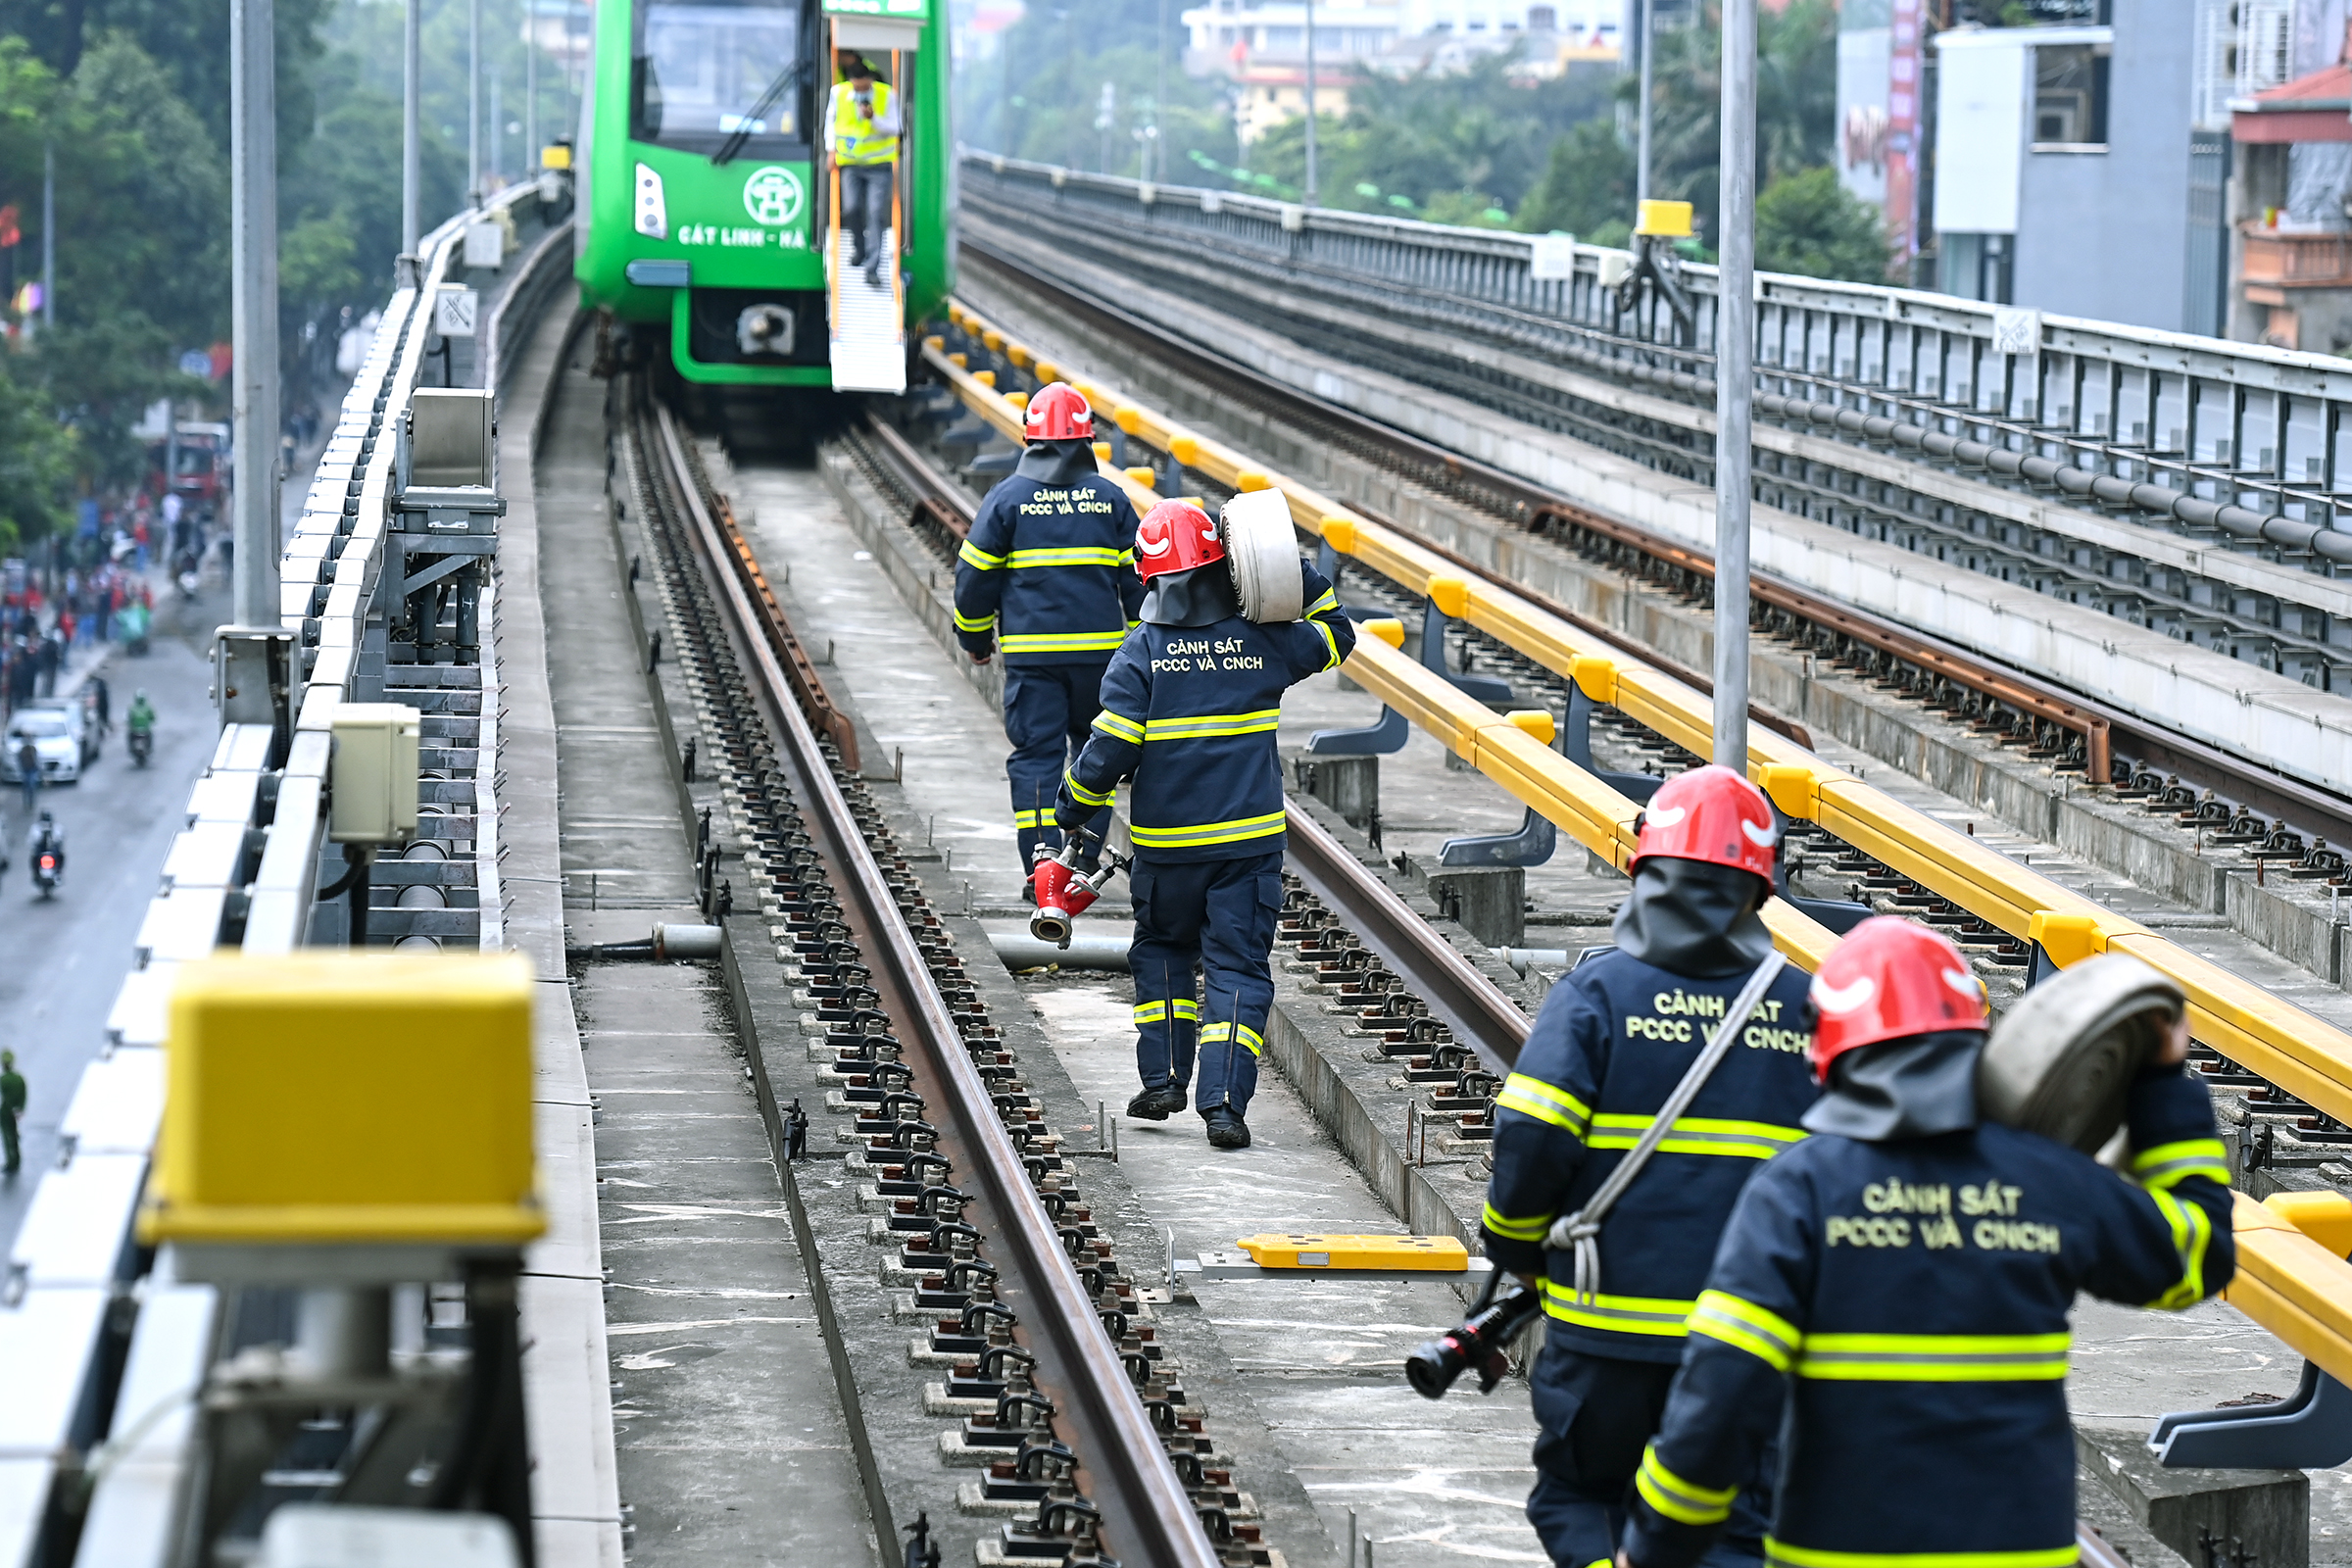 Hanoi metro conducts emergency drills prior to becoming operational